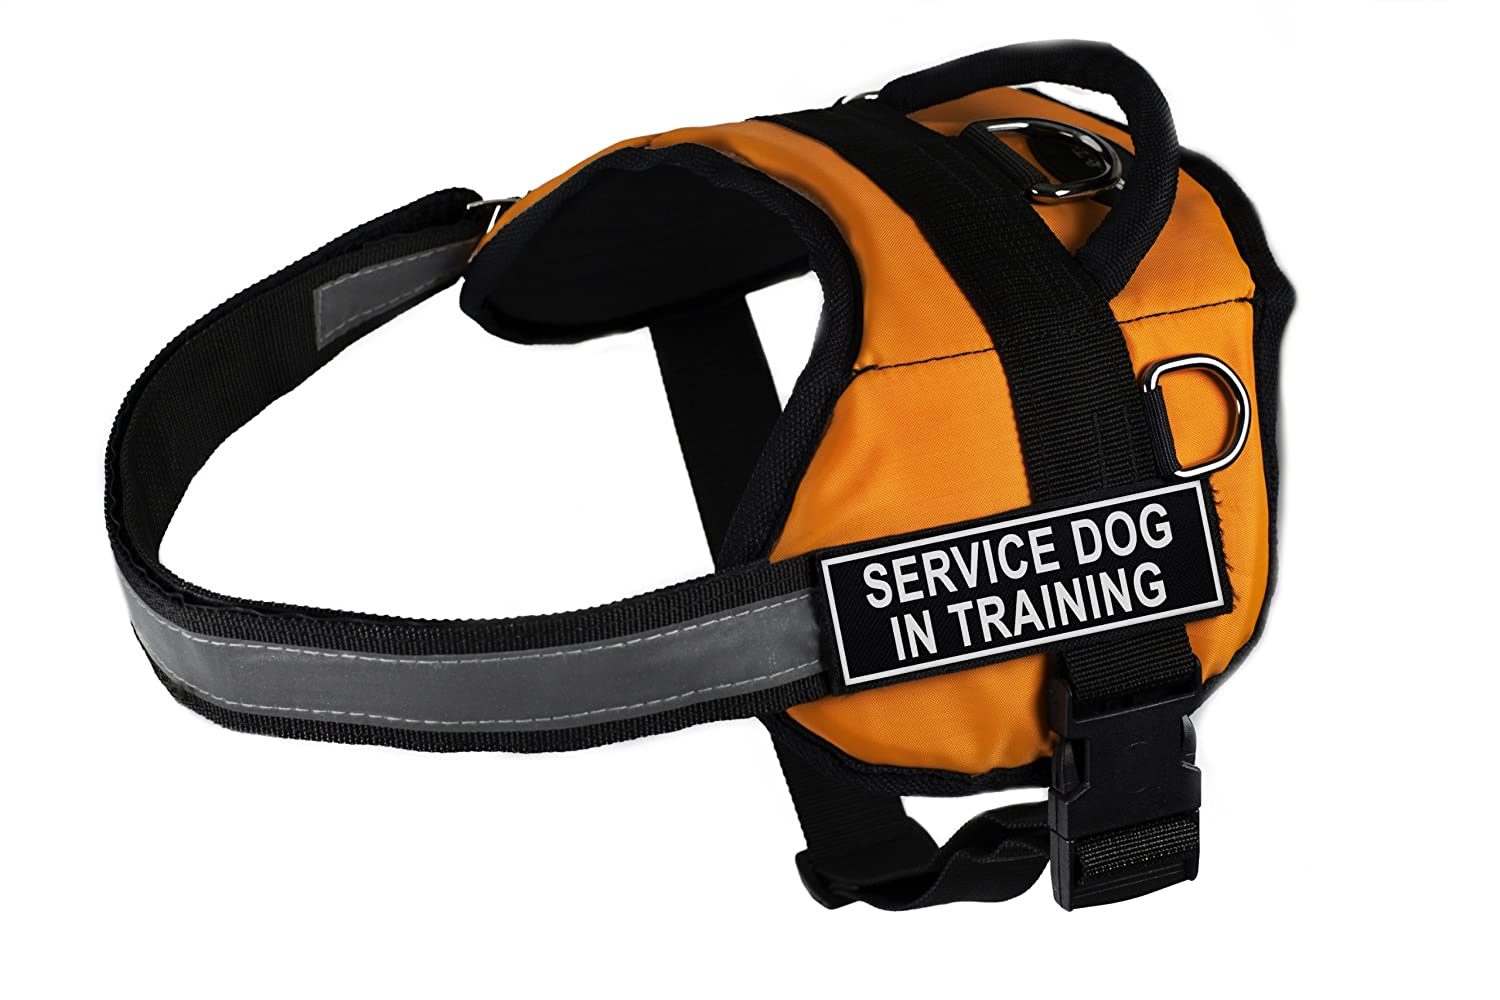 Dean & Tyler DT Works Harness Service Dog In Training Pet Harness, Large, Fits Girth Size 34-Inch to 47-Inch, orange Black